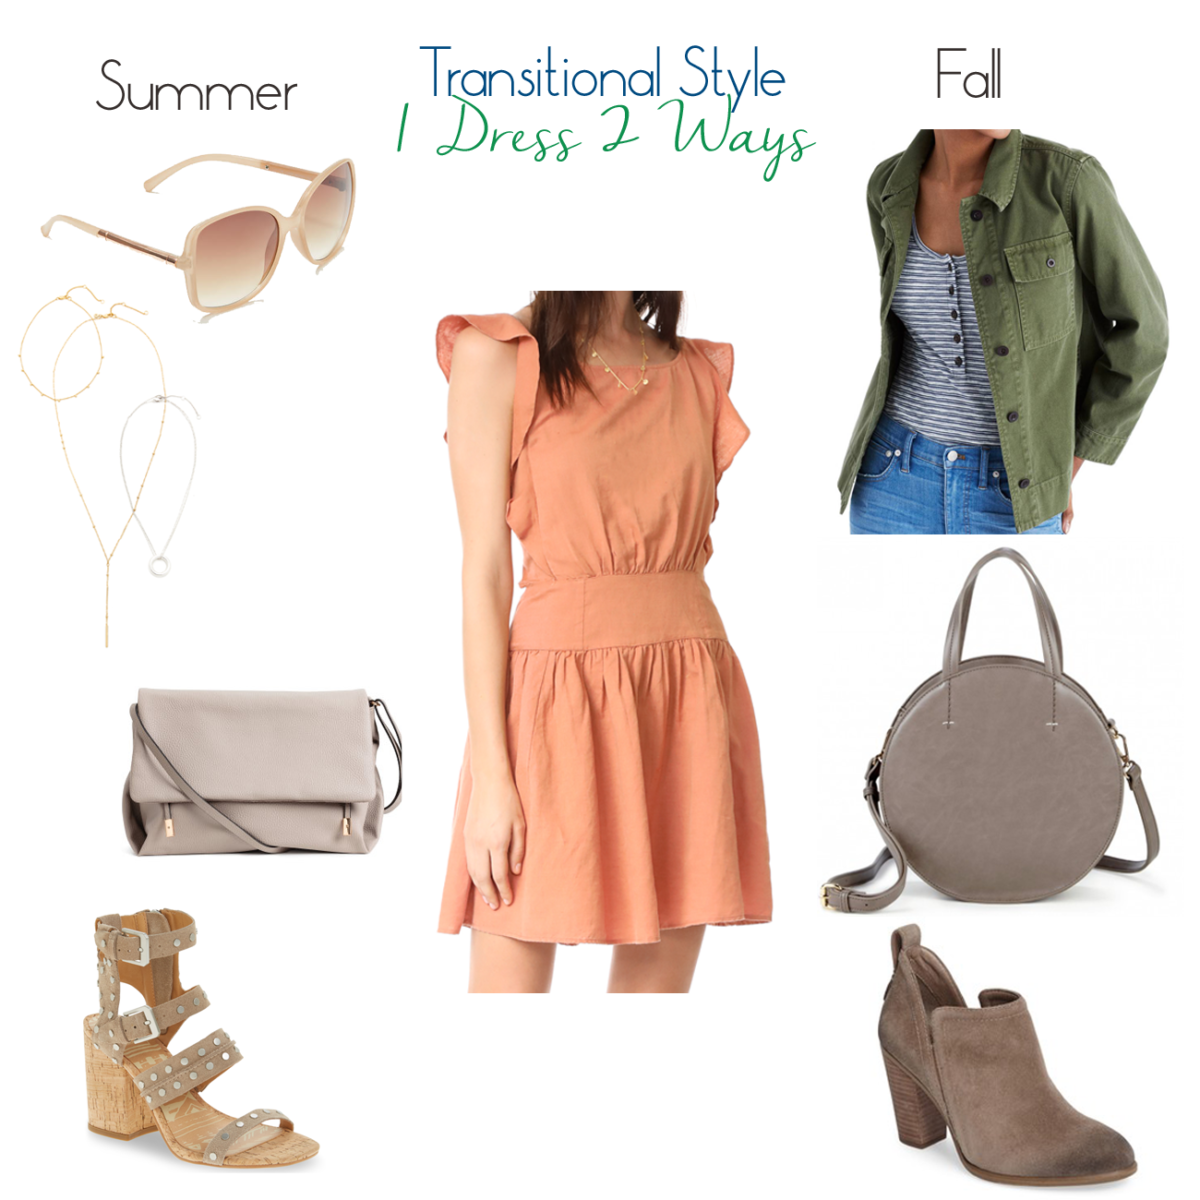 Fall Transition: How to Style a Dress Now and into Fall